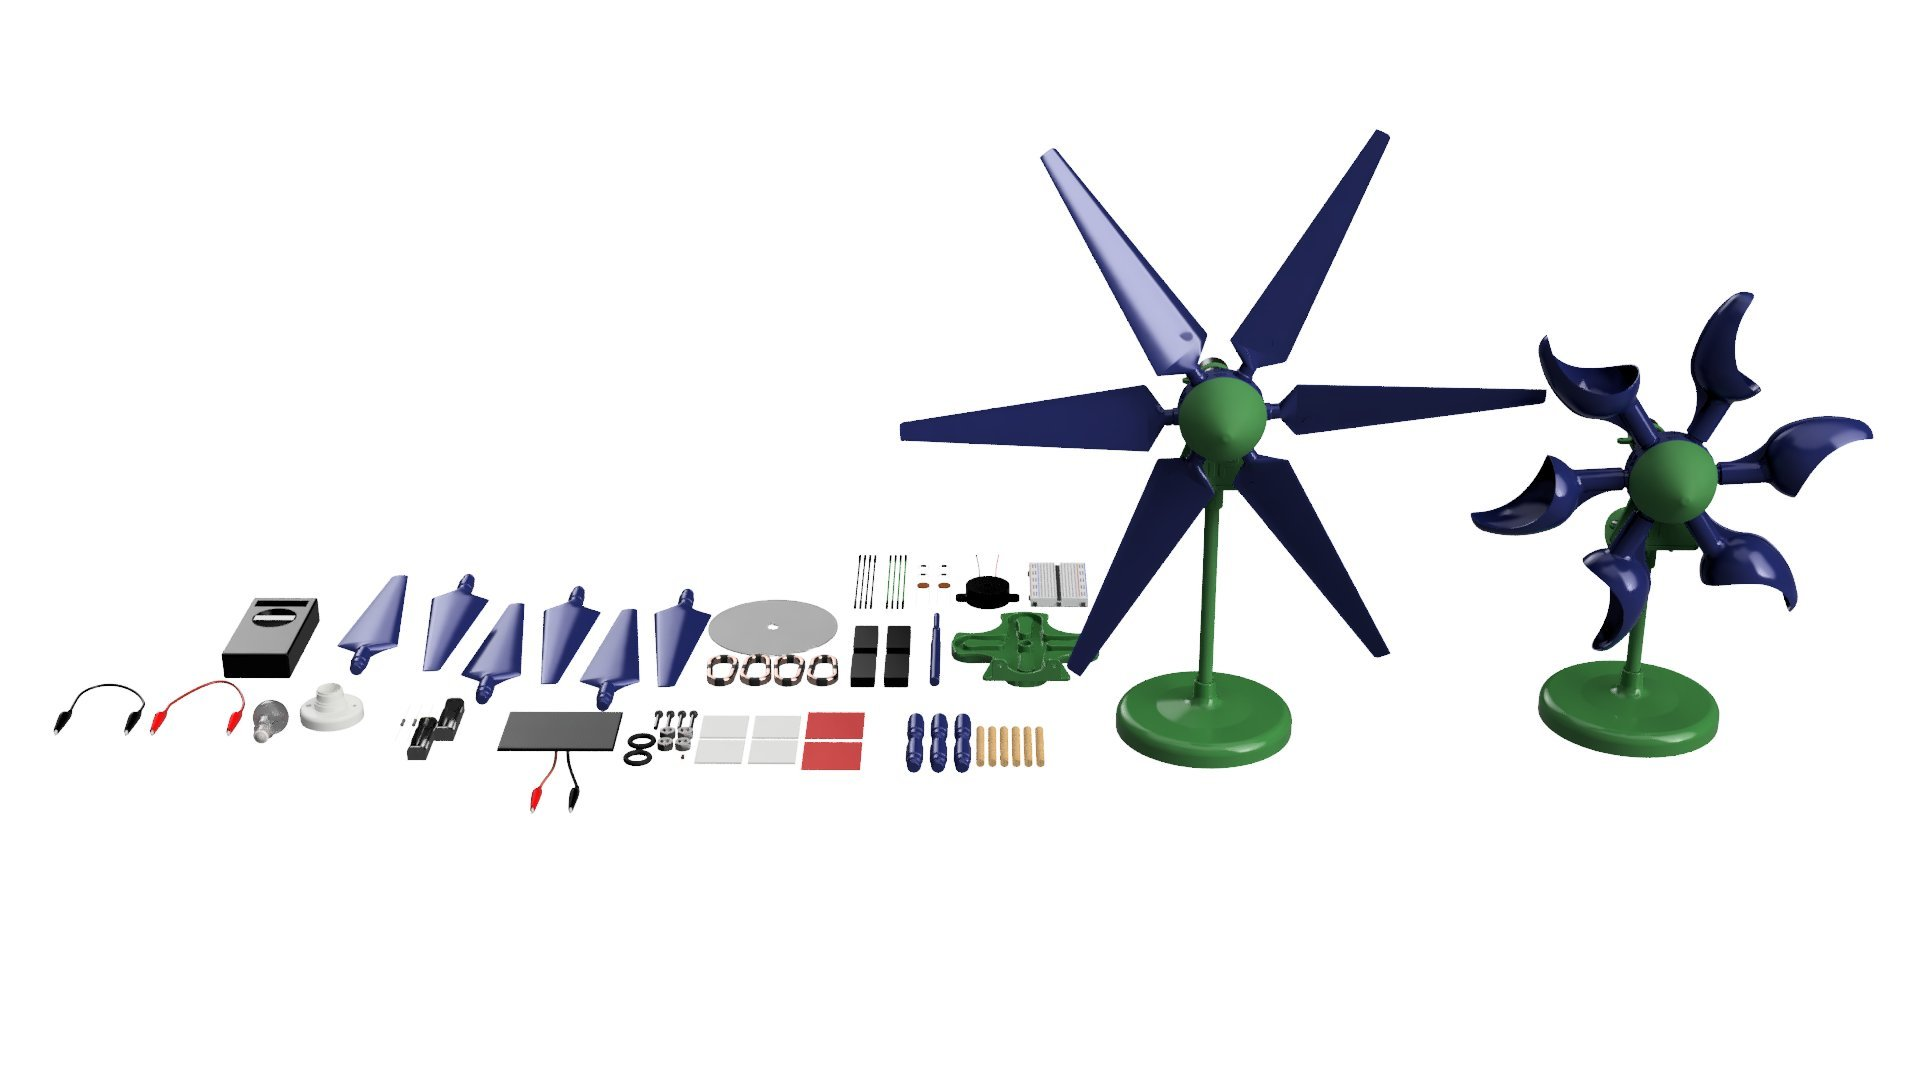 PicoTurbine Alternative Education Wind, Solar, Hydro, & Electricity Lab